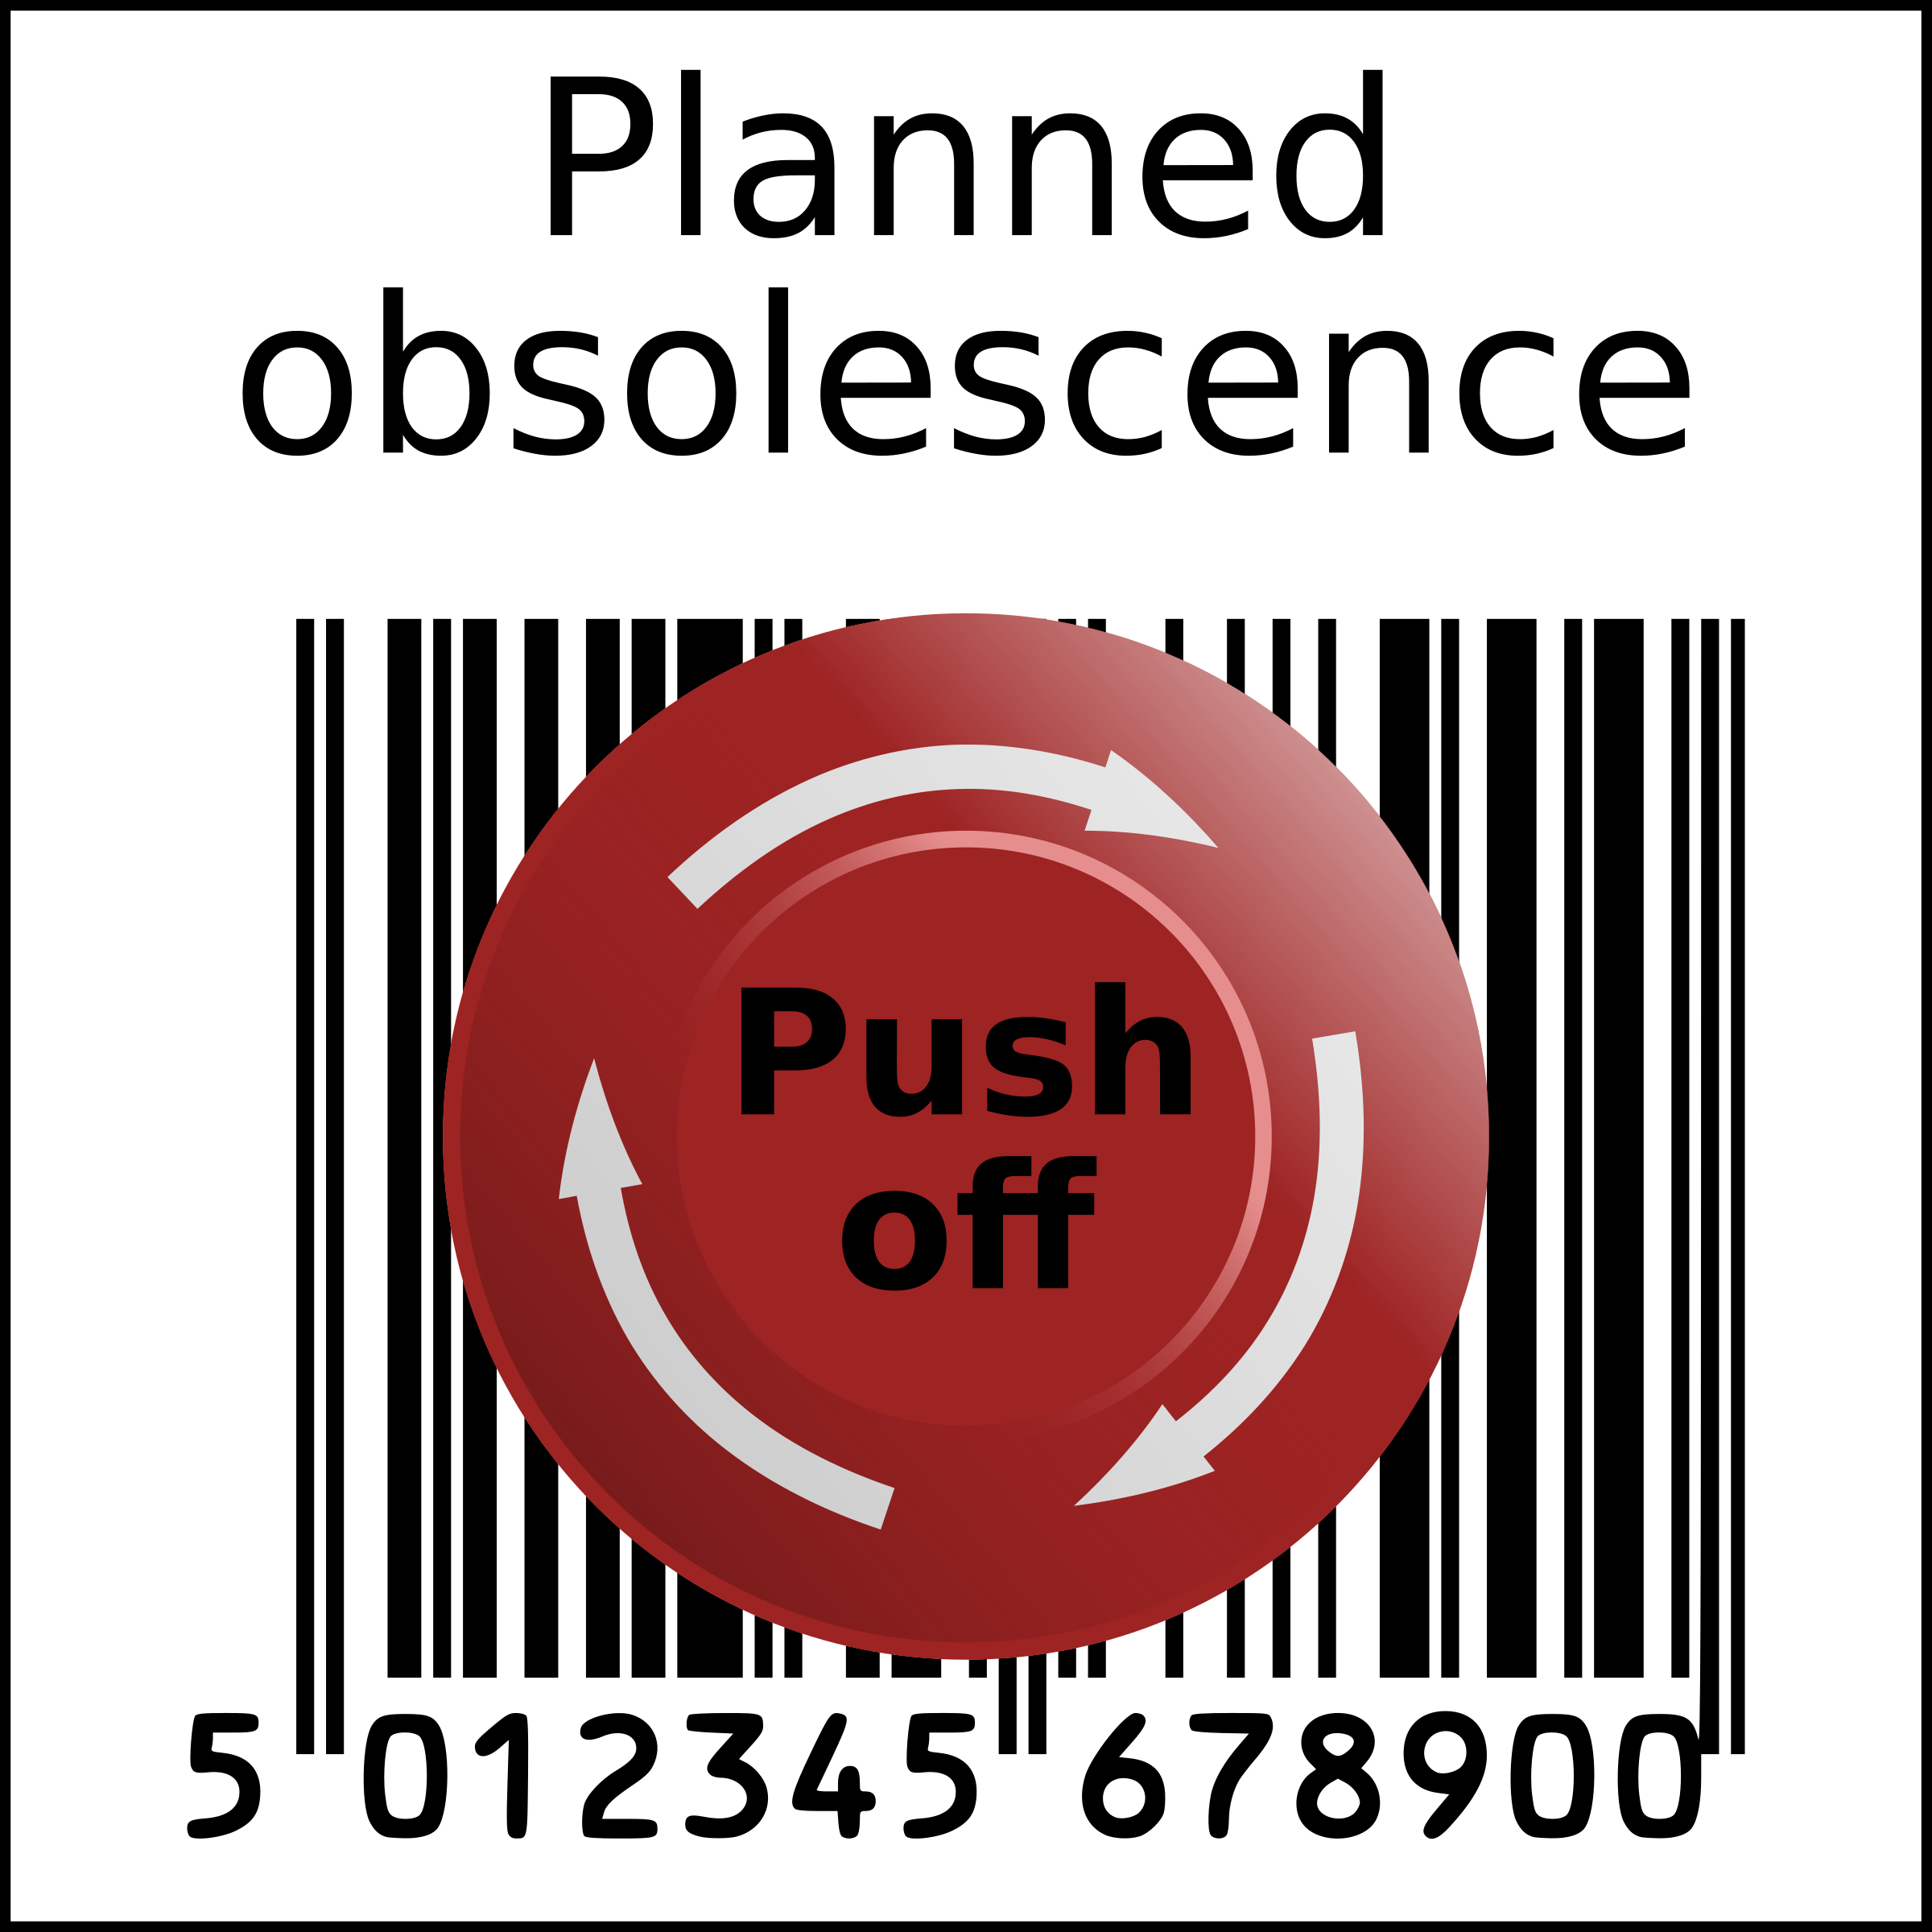 Planned obsolescence barcode in squarre with Emergency Push off button by sodruls